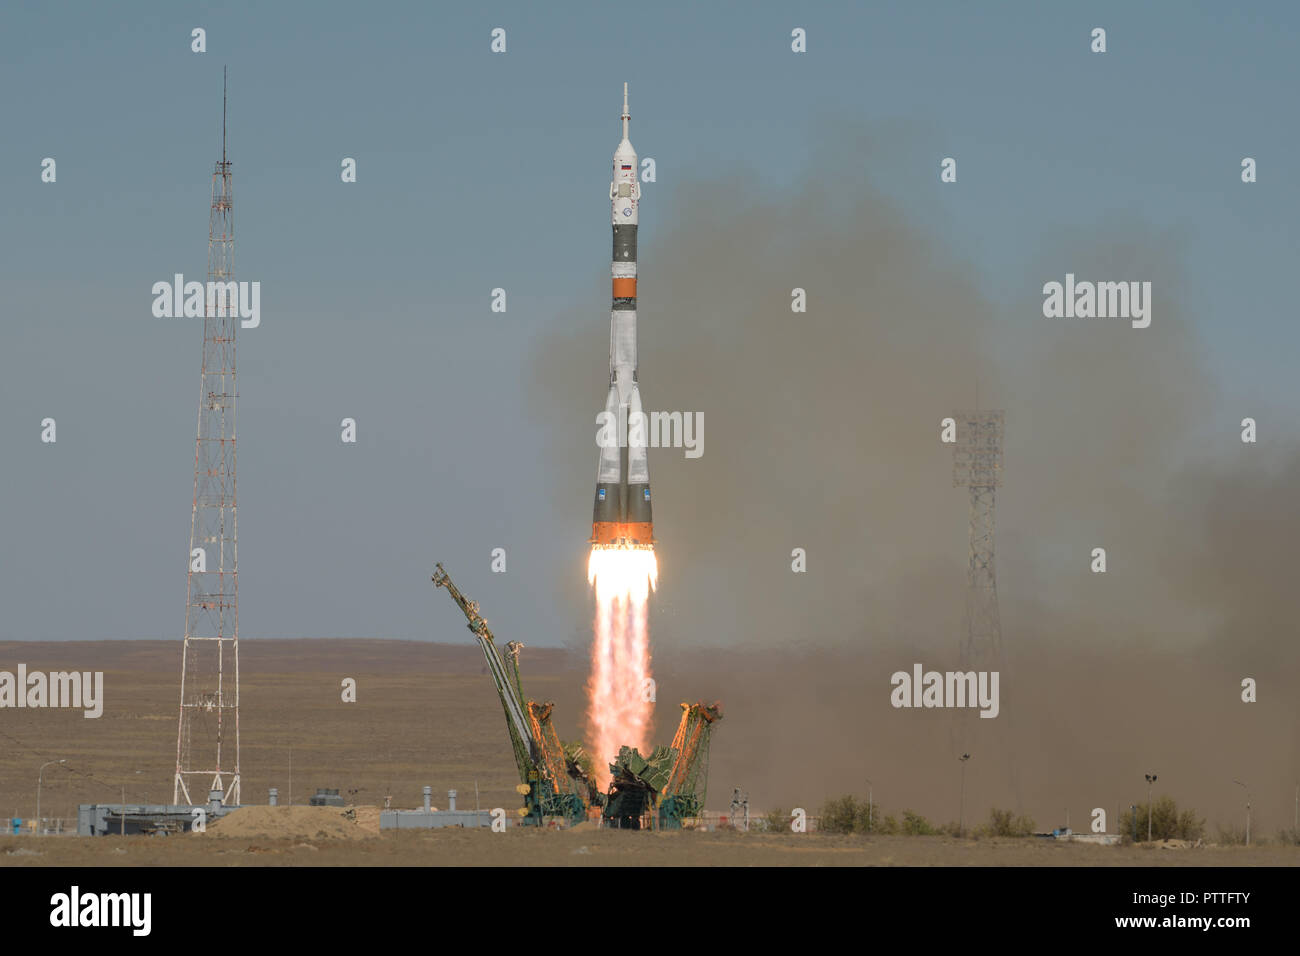 Baikonur, Kazakhstan. 11th October, 2018. The Russian Soyuz Rocket carrying Expedition 57 crew members cosmonaut Alexey Ovchinin and Nick Hague launches from the Baikonur Cosmodrome October 11, 2018 in Baikonur, Kazakhstan. Shortly after lift off the rocket malfunctioned en route to the International Space Station and aborted forcing an emergency landing in Kazakhstan. The crew members have been picked up by search and rescue and are reportedly in good condition. Credit: Planetpix/Alamy Live News - Stock Image